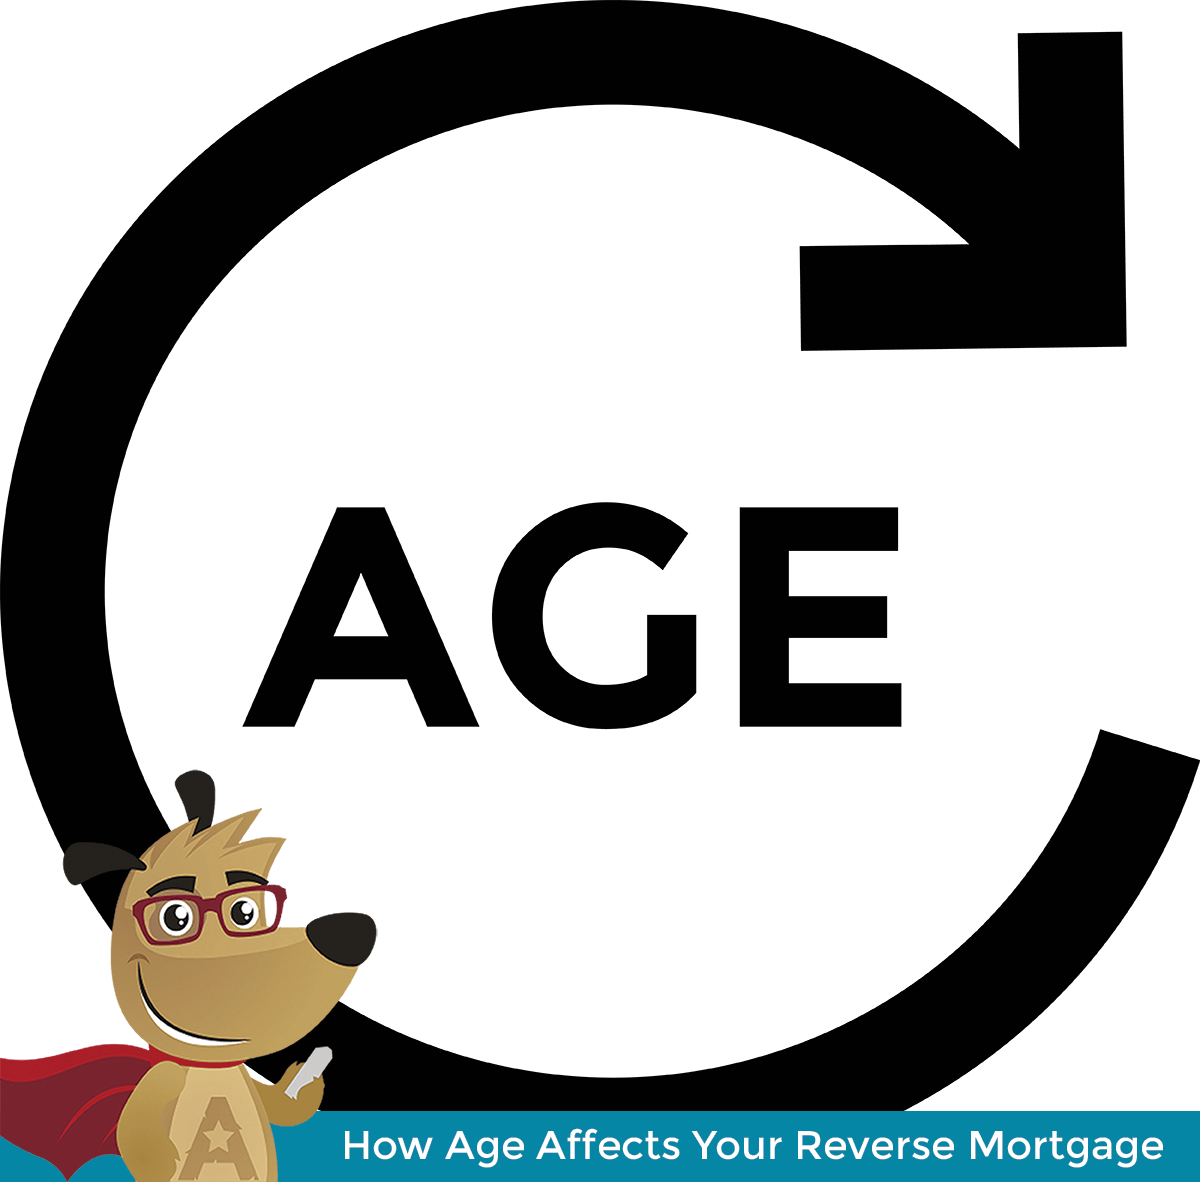 ARLO explaining how age affects reverse mortgages